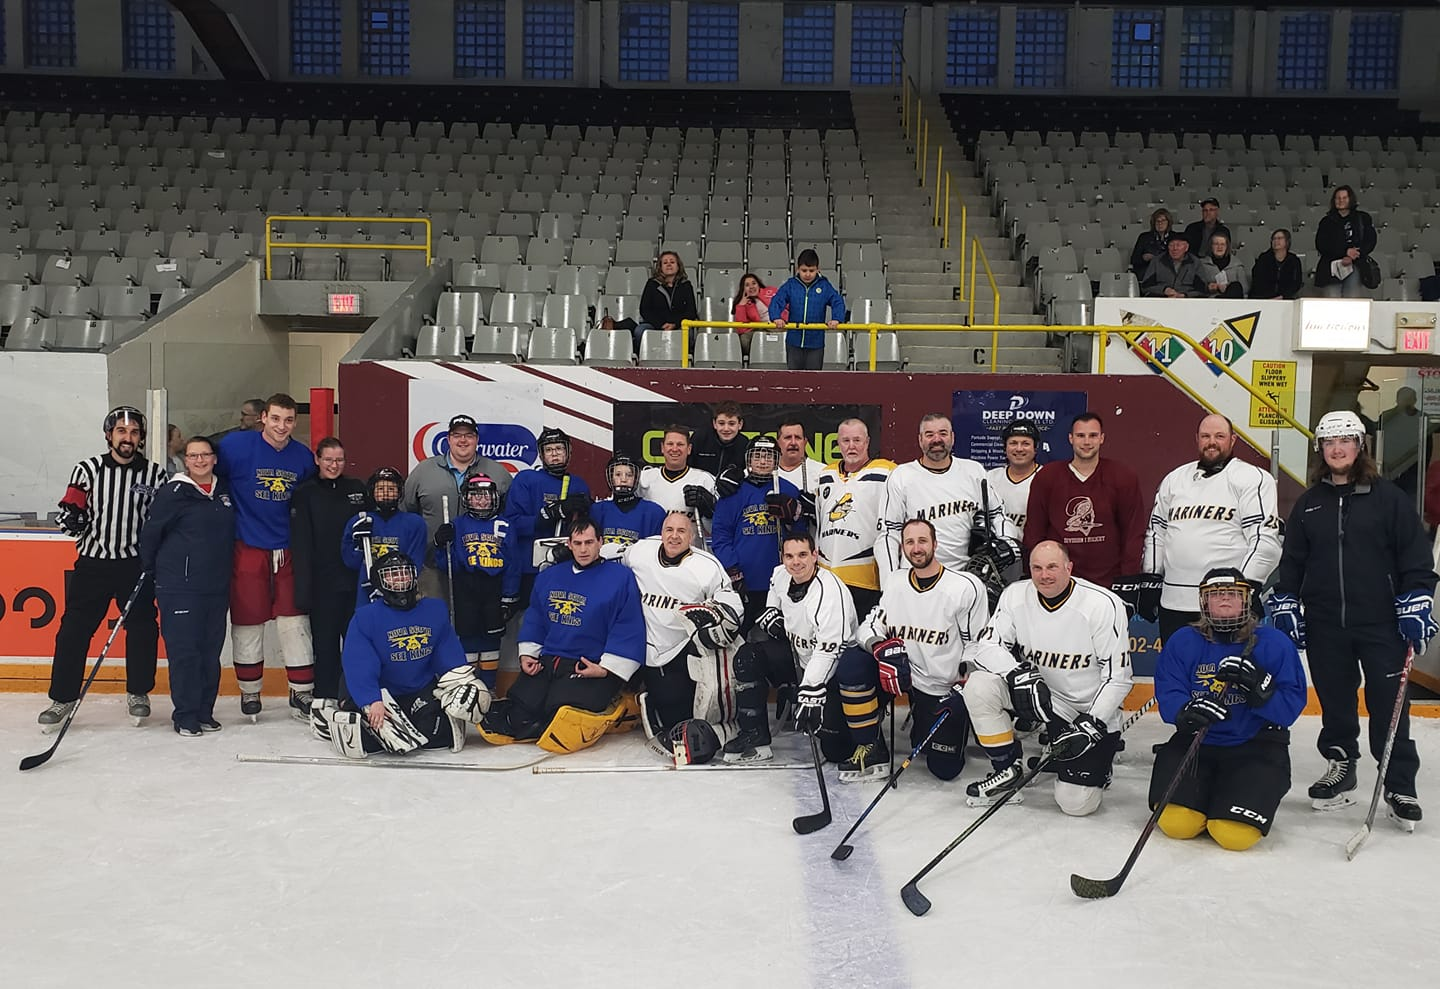 group photo of hockey players